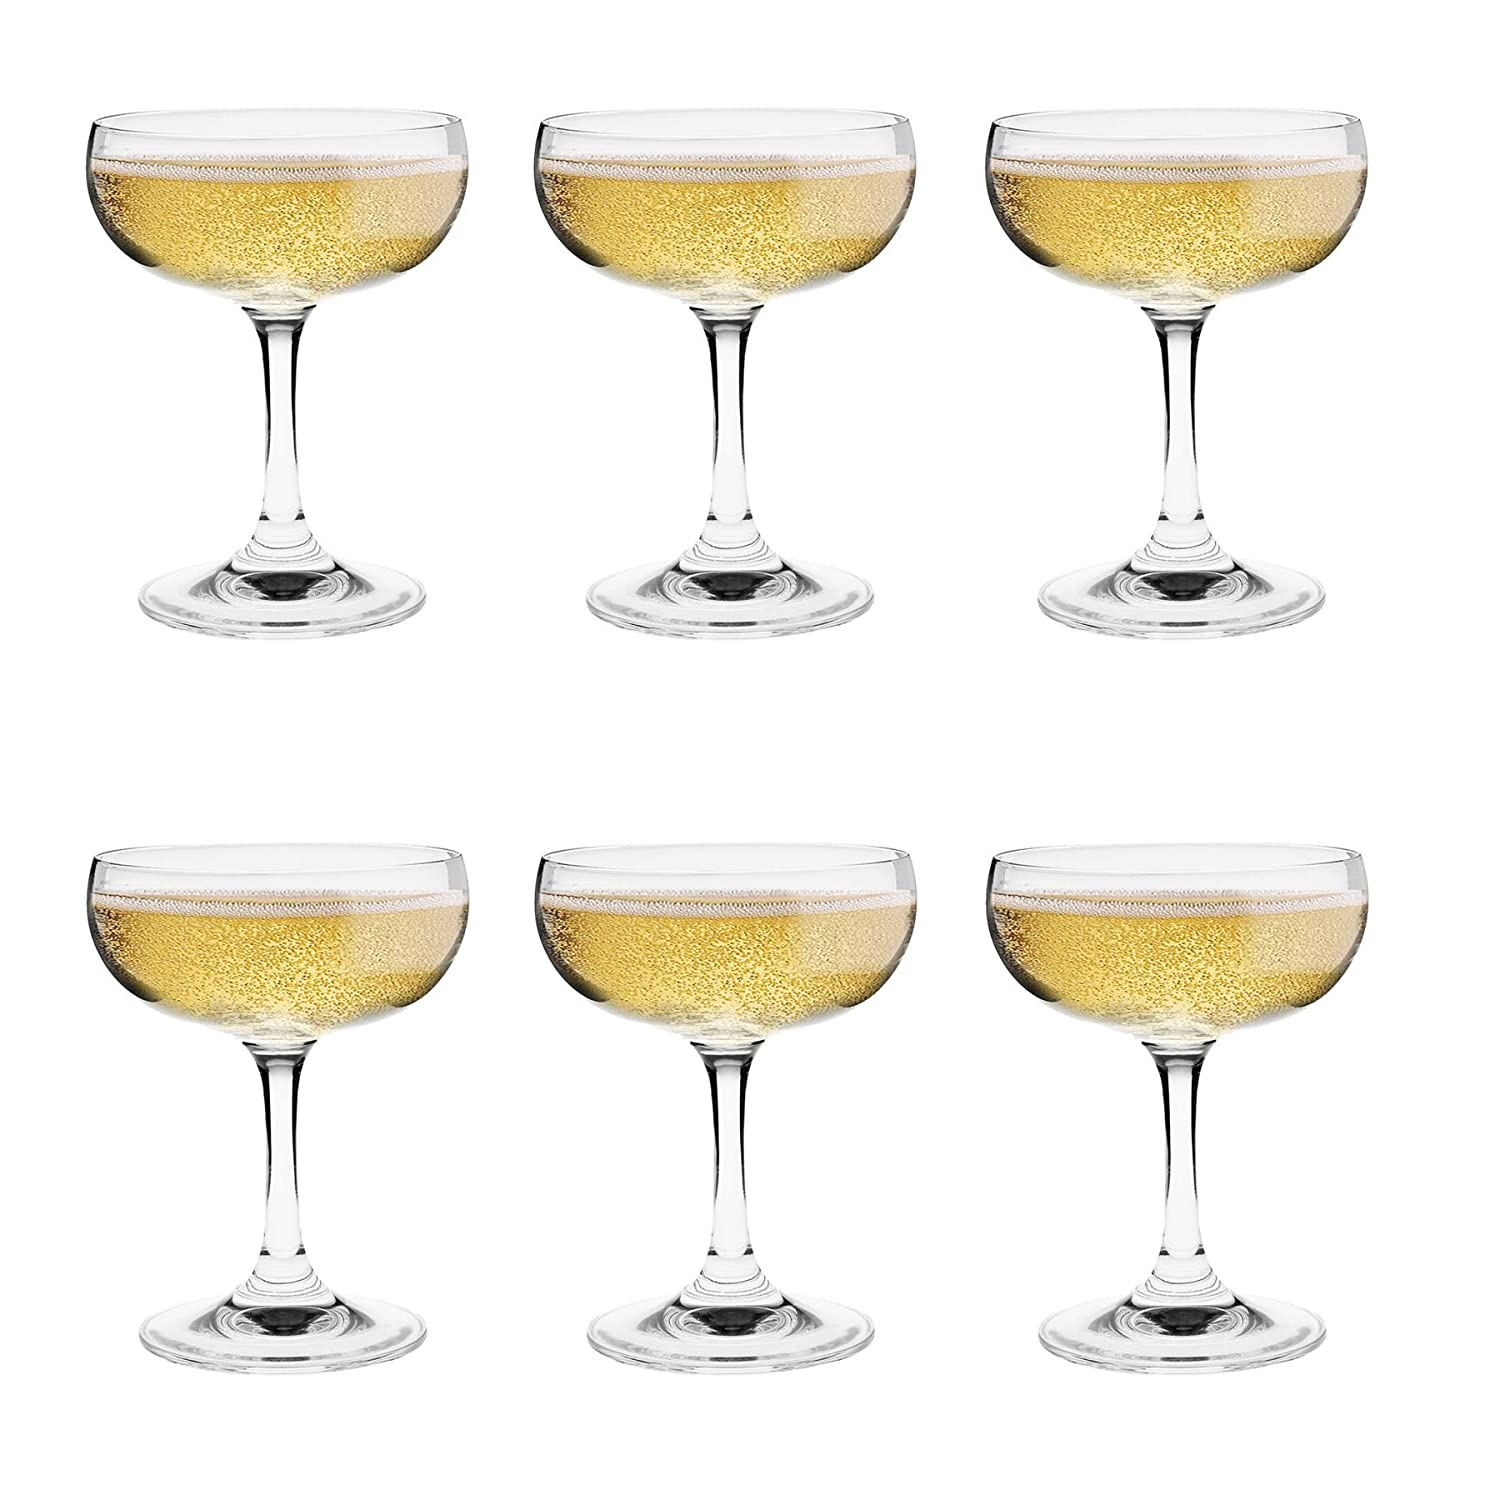 Champagne Saucers - Colour Retail Gift Box of 6 - 180ml / 6.25oz Argon Tableware